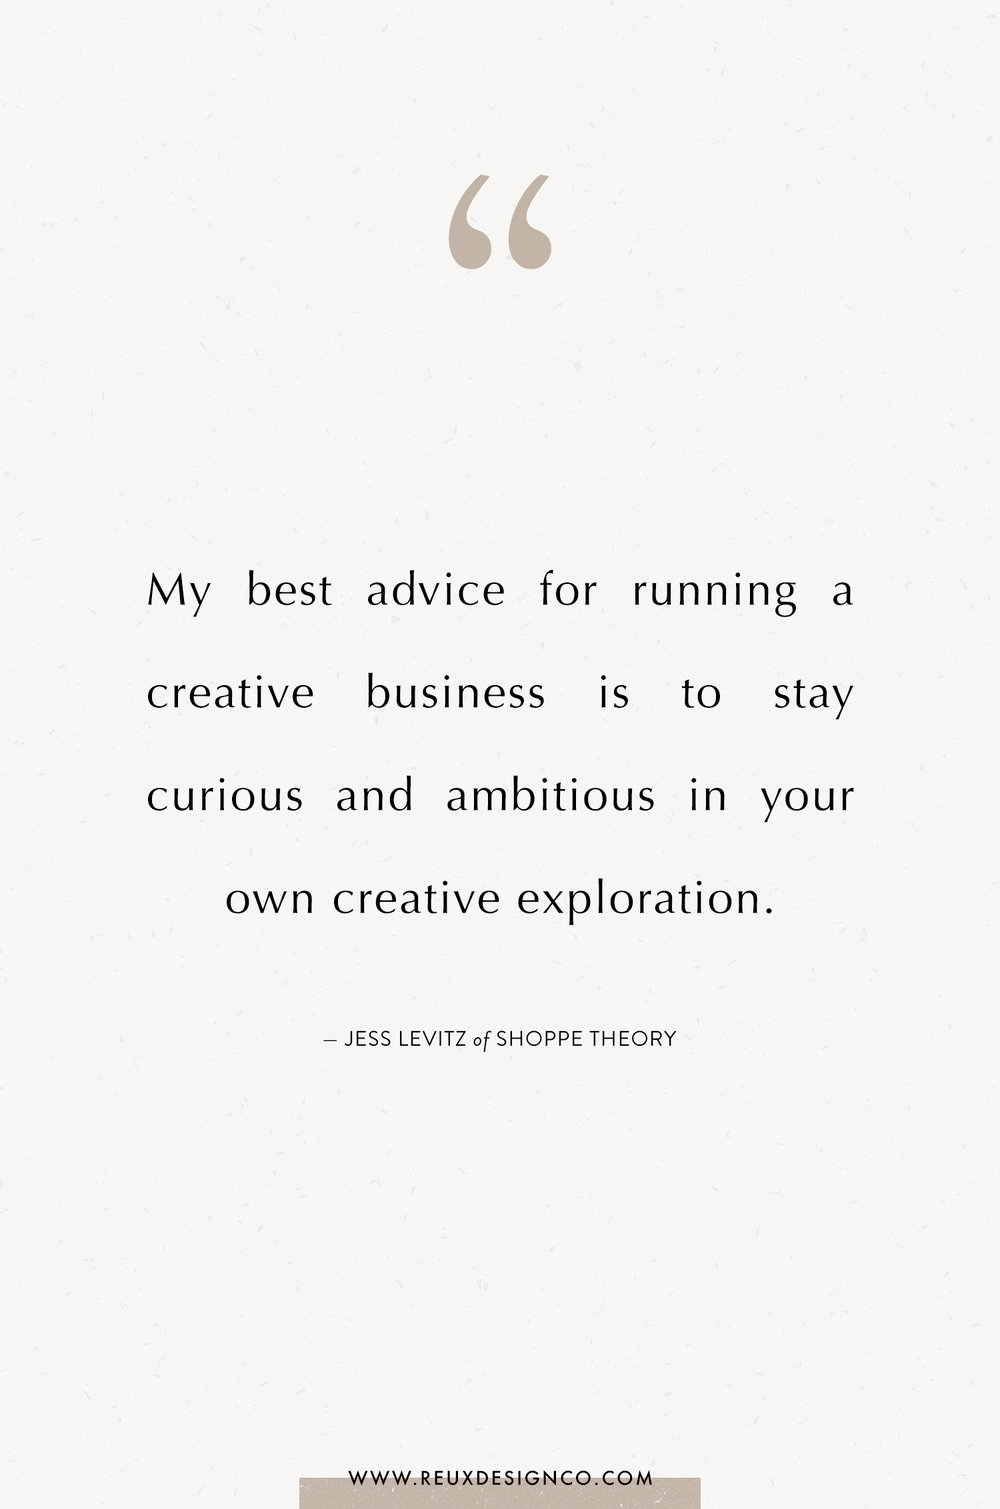 Branding + Business Tips from Less Levitz of Freelance Wisdom / Shoppe Theory on the Reux Design Co. blog | positive affirmations, quotes on energy, quotes on abundance, affirmations on creativity, affirmations for women, affirmations for entrepreneurs, words to live by, build a sustainable business you love